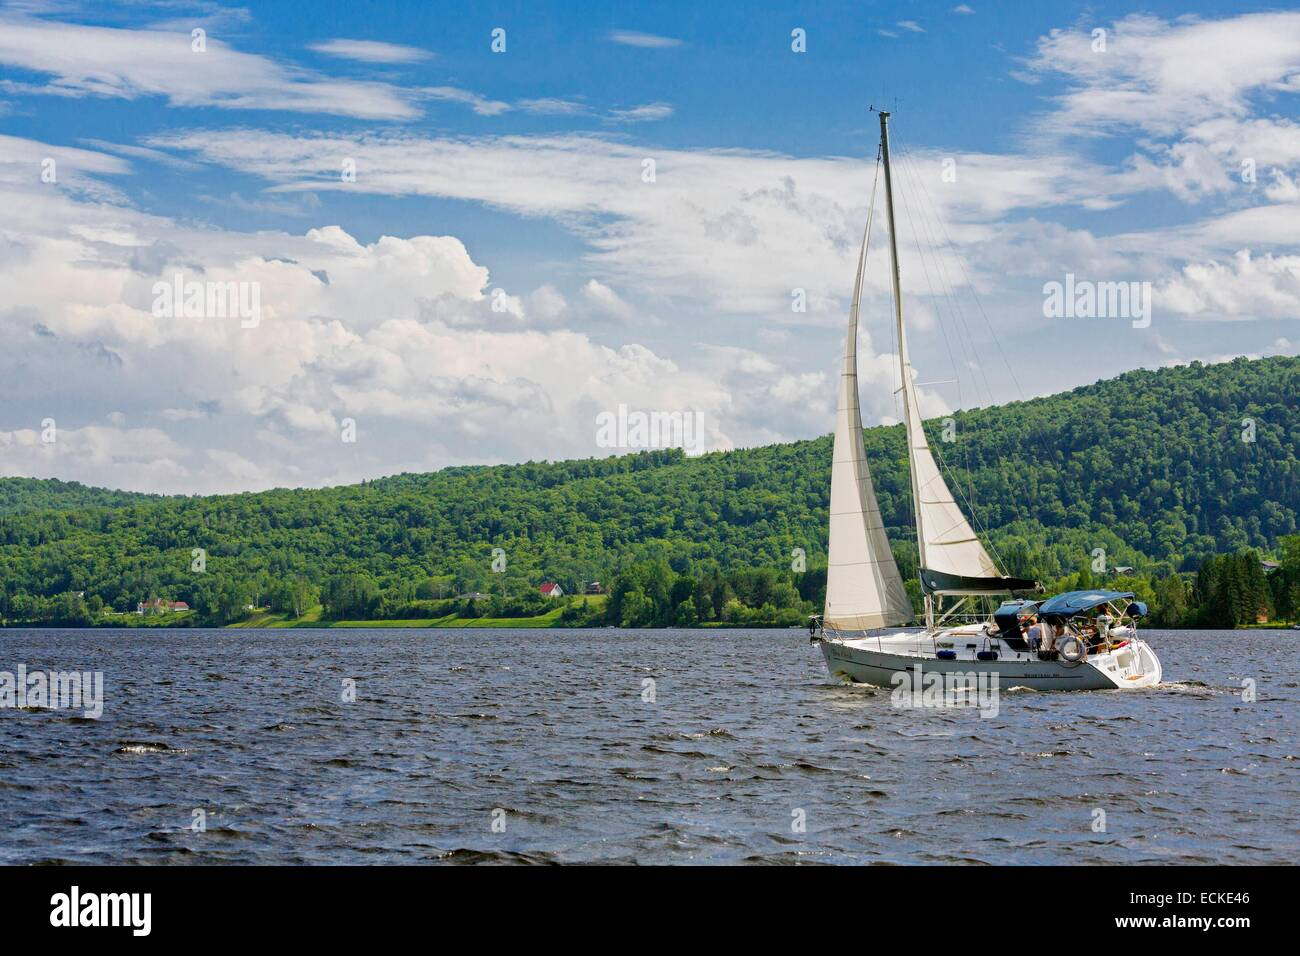 Canada, Quebec, Mauricie, the surroundings of Shawinigan, Saint-Maurice River, sailing - Stock Image